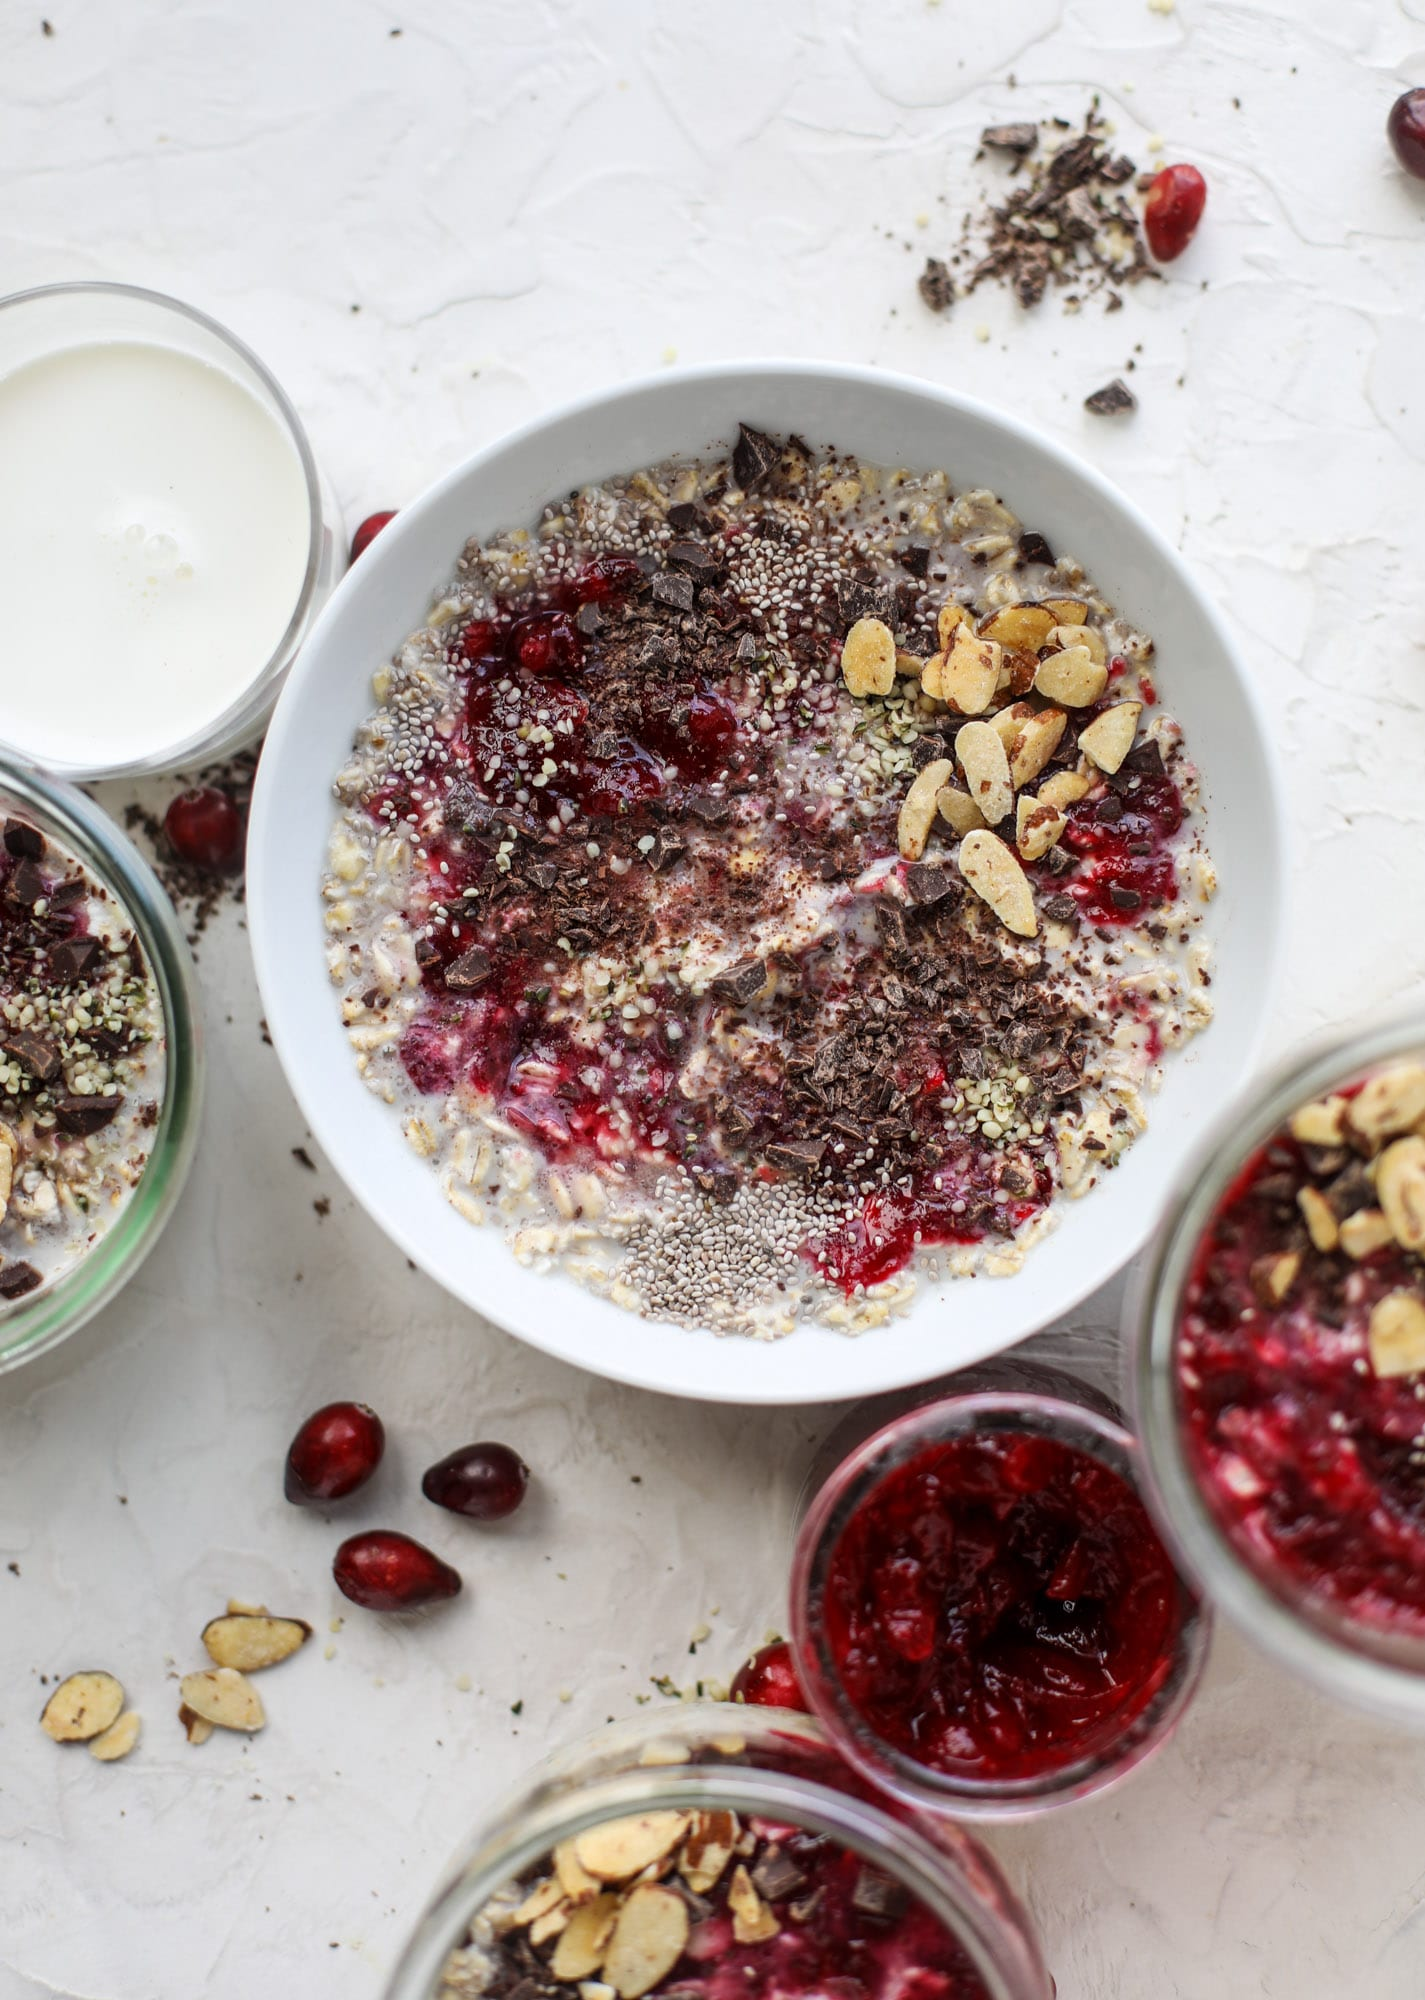 These leftover cranberry overnight oats are the perfect post-Thanksgiving breakfast! Leftover cranberry sauce and dark chocolate come together to flavor chewy, chilled overnight oats. Add on sliced almonds, chia seeds and hemp hearts for more deliciousness! I howsweeteats.com #overnight #oats